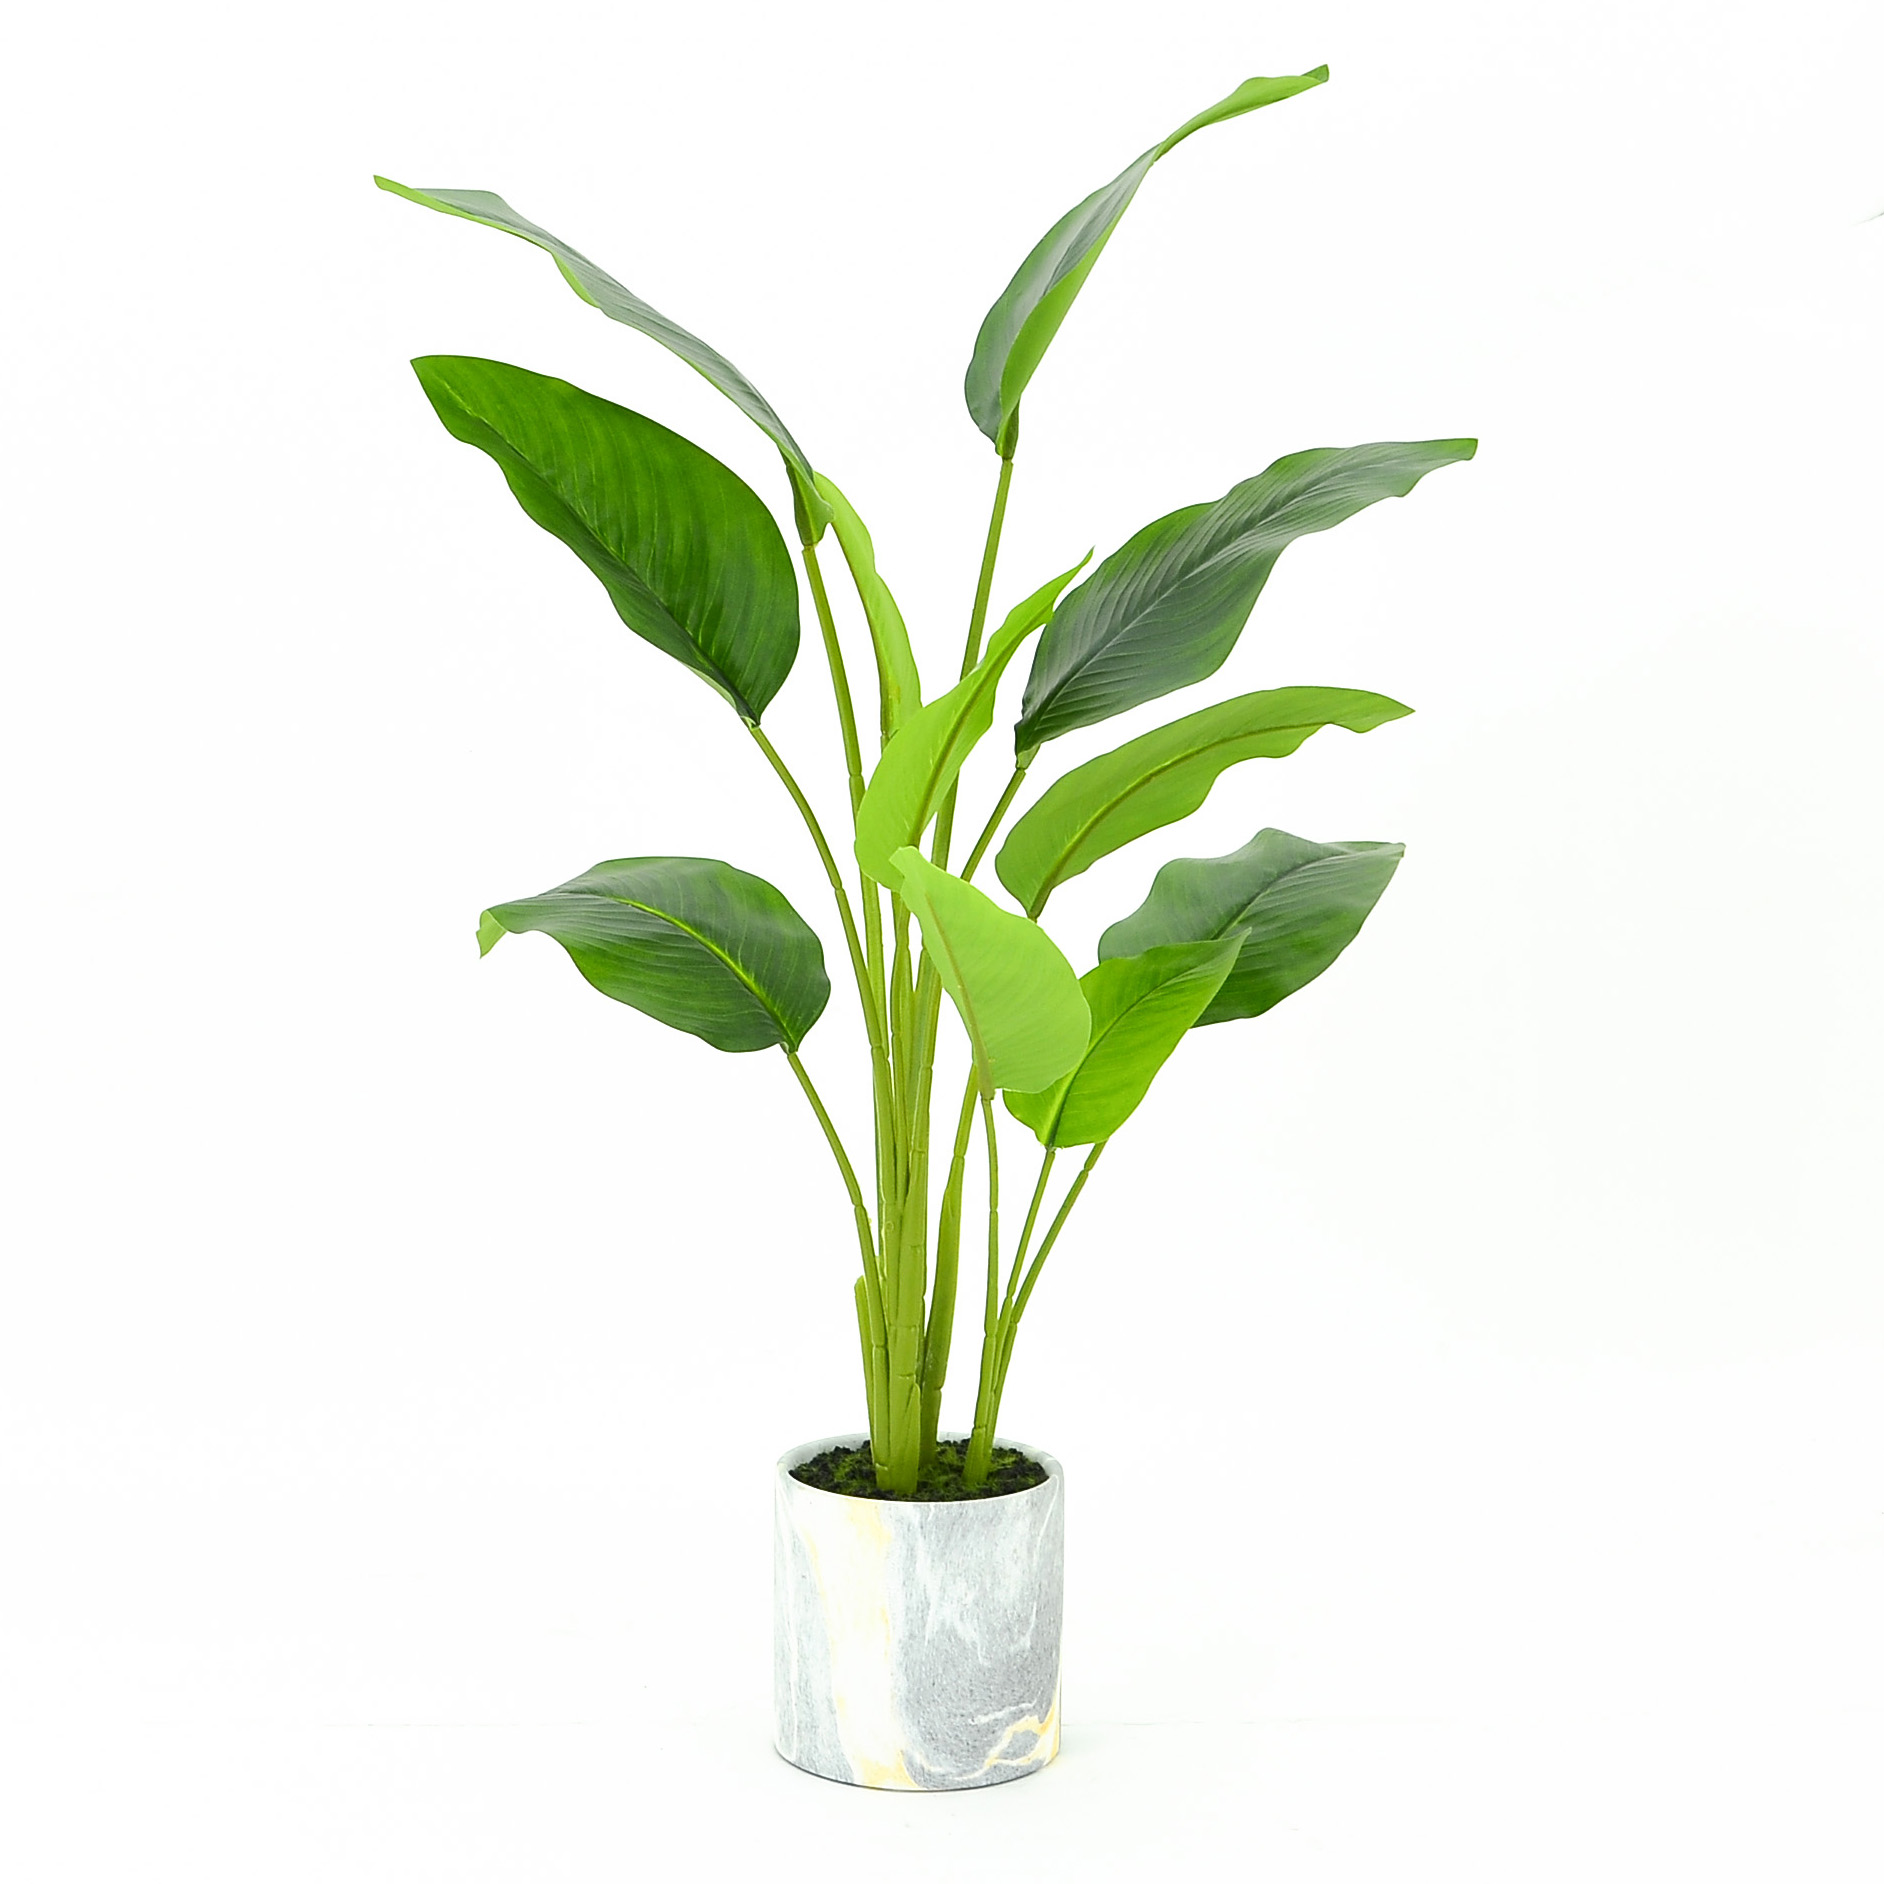 Win Young 2021 Hot Sale Cheap Indoor Decorative Artificial Plants Artificial Tree